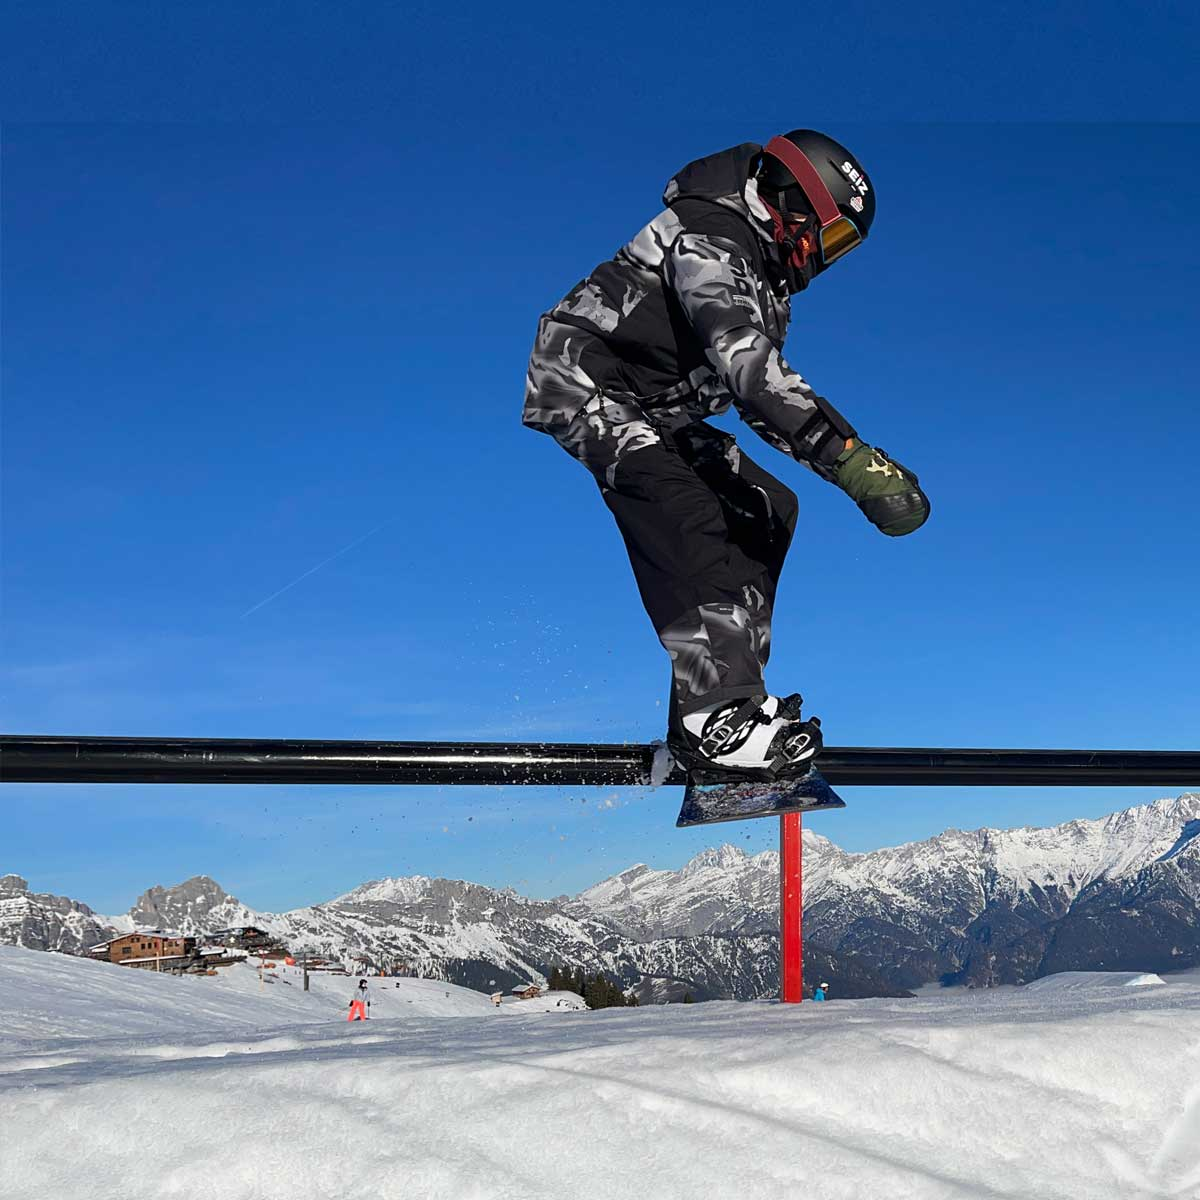 Florian Lechner, Flori Lechner, Flocki Lechner, Christoph Lechner, Christof Lechner, Deutschland, Österreich, German, Germany, Austria, Austrian, Snowboard, snowboarder, snowboarding, halfpipe, HP, freestyle, kicker, rail, slopestyle, SP,  powder, freeride, snow, winter, MTB, moutainbike, riding, Crosscountry, XCO, downhill, DH, dirtbike, roadbike, cyclocross, trail, trial, Squad Snowboard Bayern, Freestyle, Youth National Team HP Snowboard Bayern, Youth World Championchips, U15, Youngsters Cup, winner, professional, Deutscher Meister, Halfpipe Men, Winner Austrian Masters Halfpipe, Deutscher Nachwuchs, Halfpipe, Halfpipe Roockie, Radunion St. Johann, Kühtai, Laax, Davos, Crans Montana, Kitzsteinhorn, New Zealand, Saalbach-Hinterglemm, Leogang, Schladming, Tegernsee, Kitzsteinhorn, Rehall, Holemkol, Union, Union Bindings, Level, Level Gloves, Ski Mobile, Snowboard Bayern, OSR, Oldschoolracing, deeluxe, deeluxe boots, scott, FIS, FIS Pointlist, FIS Dashboard, World Snowboard Point List, WSPL, Switch Backside 540°, Quripler,  Frontside 720°, Cap 540°, Backside 540°, Switch Quripler, Frontside Invortat 720°, Cap 720°, Backside 720°, Switch Backside 720°, Backside 720°, Frontside 720°,  Anderflip, Frontside Boardslide, Boardslide, 270 on 270 off Facebook, Instagram, YOU TUBE, Snapchat, social media, flo@florianlechner.at